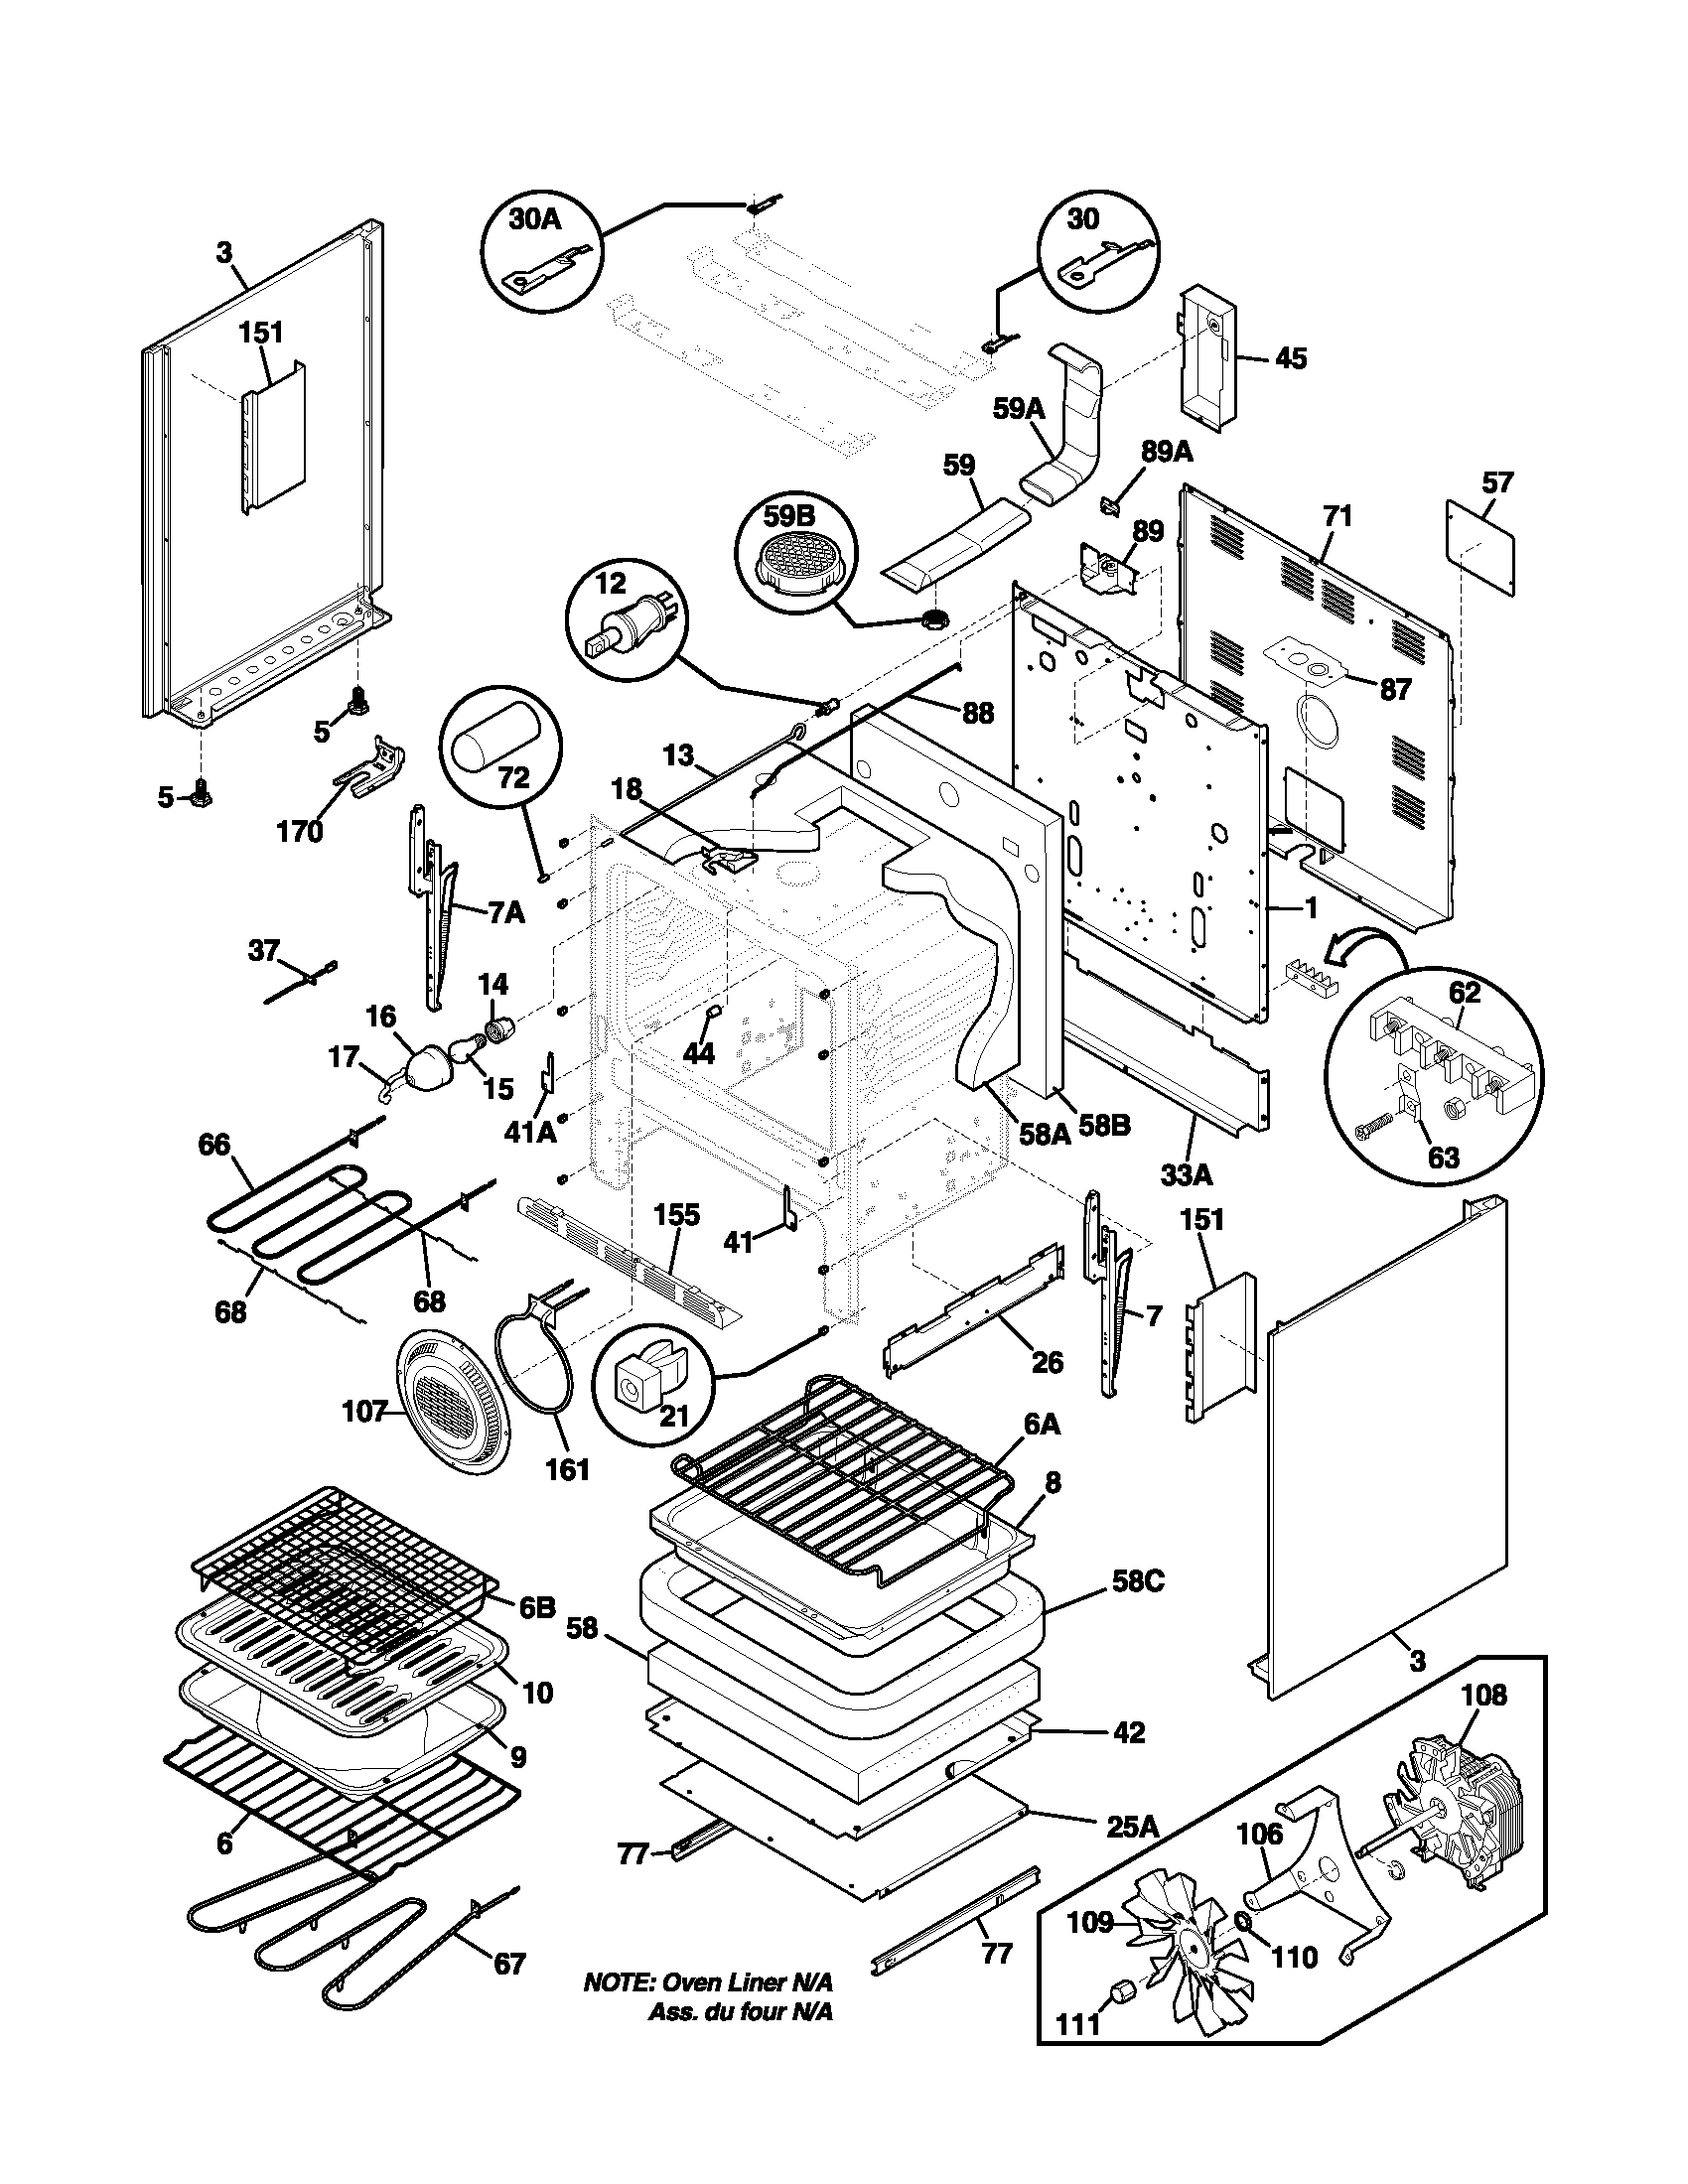 body parts?resize\\\=1700%2C2200\\\&ssl\\\=1 sample wiring diagrams appliance aid on whirlpool dishwasher frigidaire dishwasher wiring diagram at love-stories.co